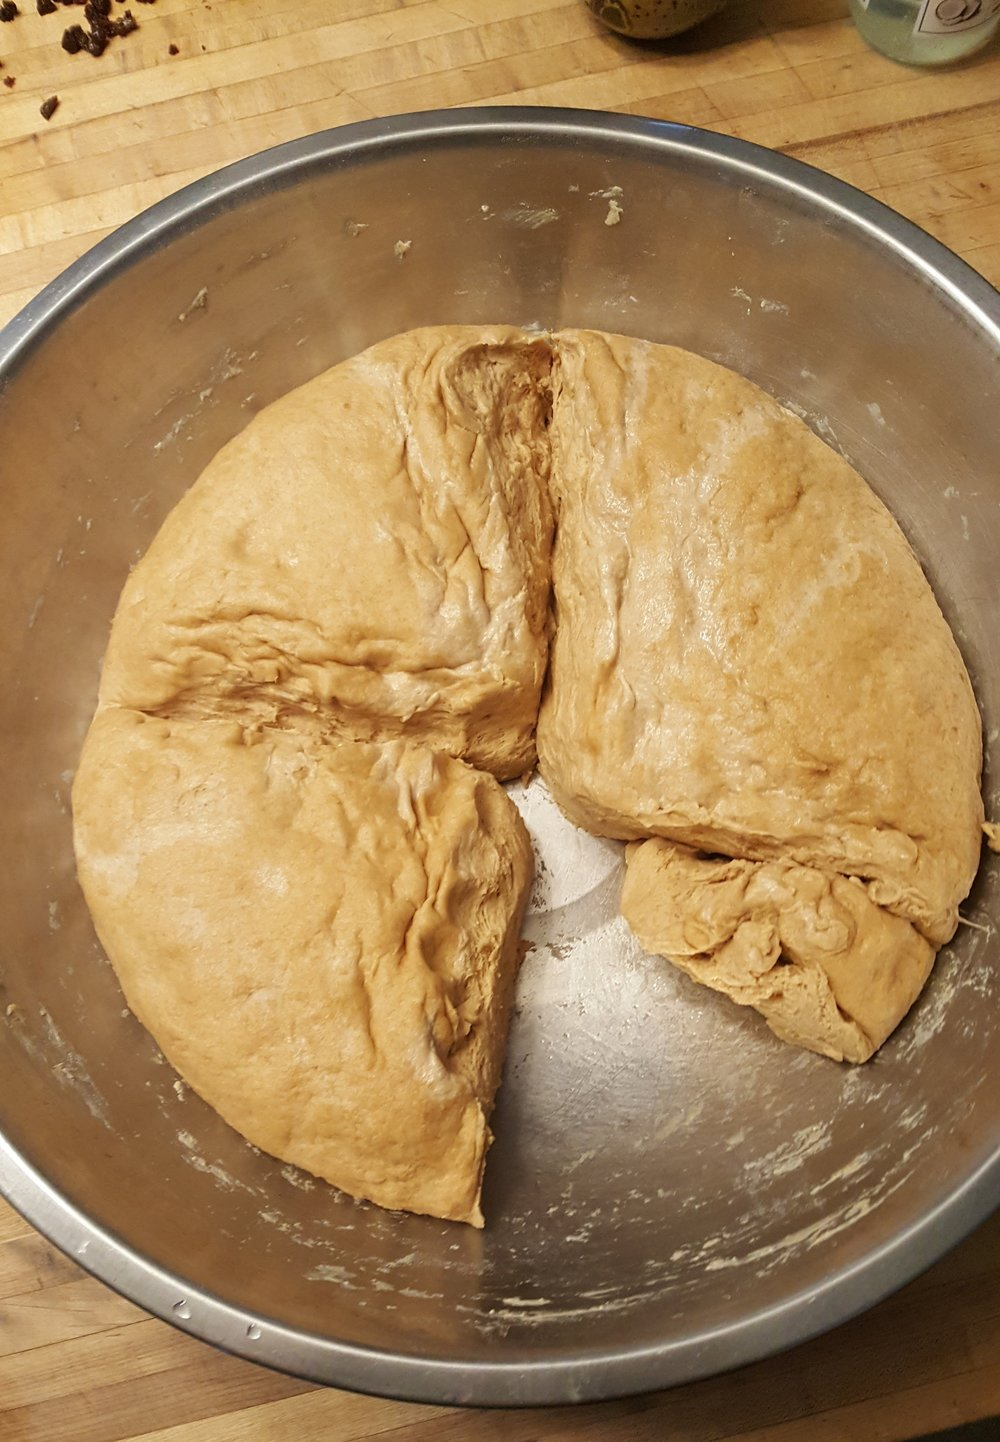 This photo shows the dough after it has risen overnight, a section is removed to begin the bagel making process.